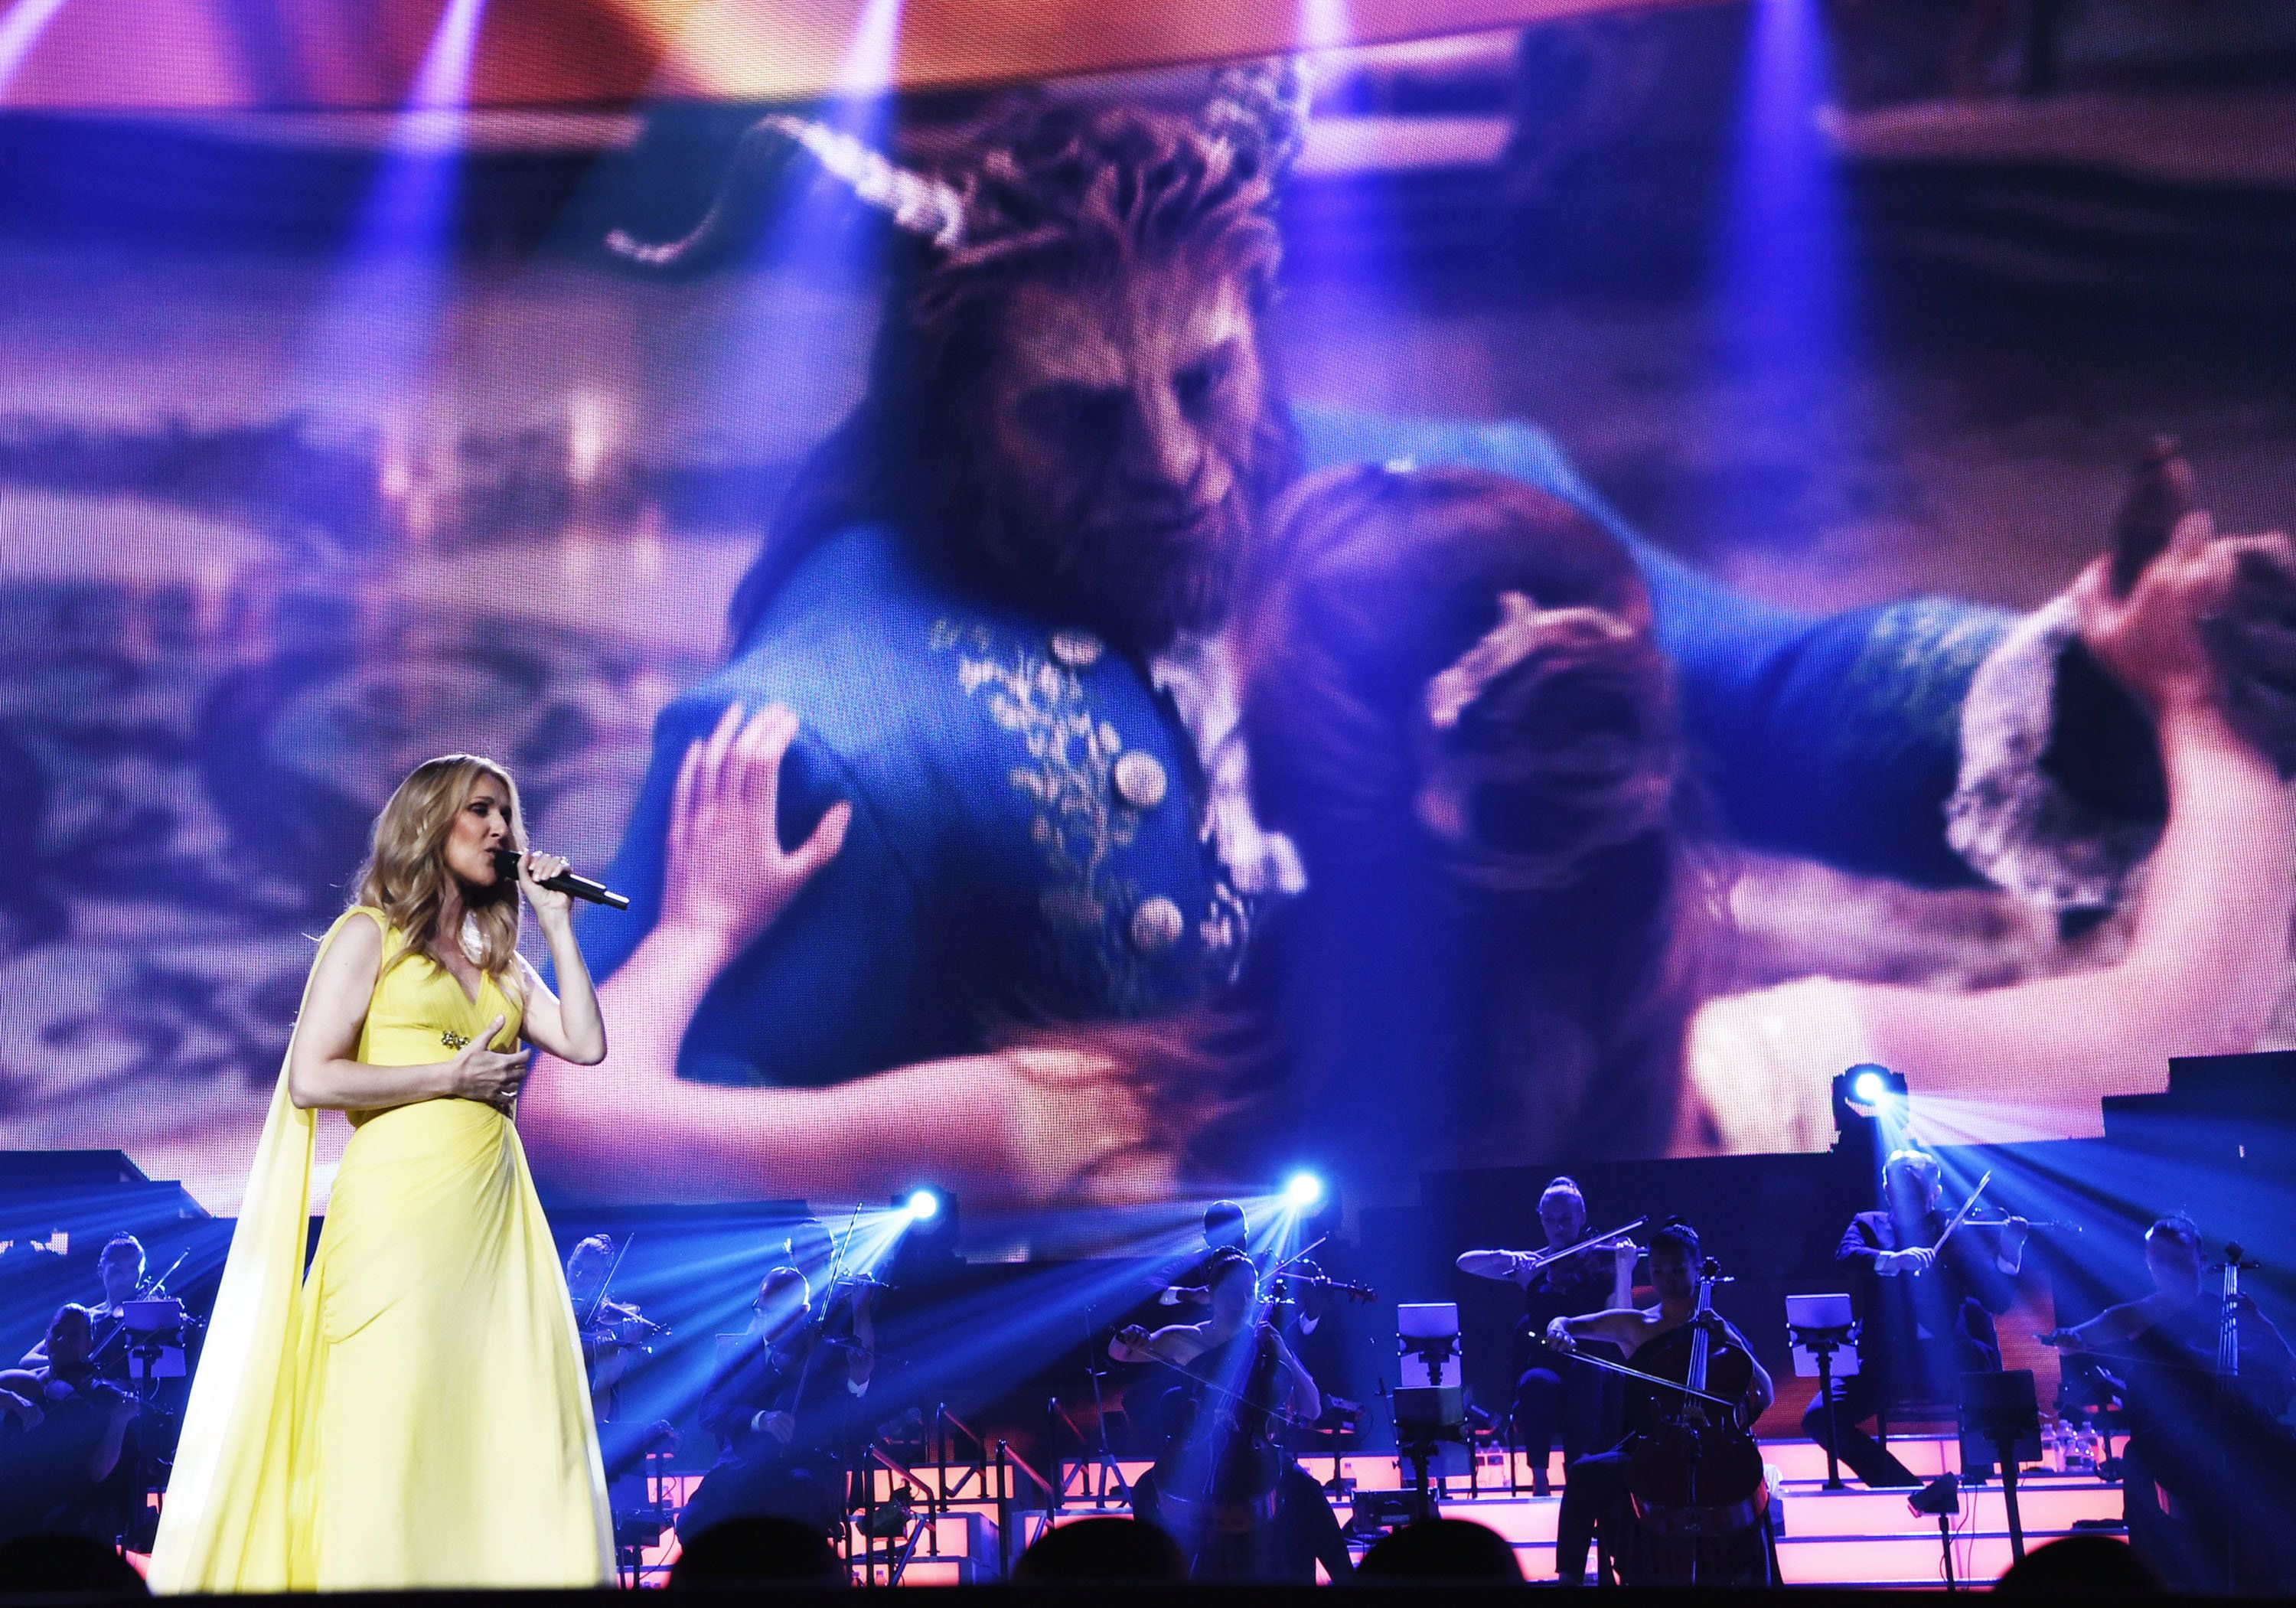 LAS VEGAS, NV - MAY 24:  Celine Dion performs Beauty and The Beast's 'How does a moment last forever' at The Colosseum at Caesars Palace on May 24, 2017 in Las Vegas, Nevada.  (Photo by Denise Truscello/WireImage)